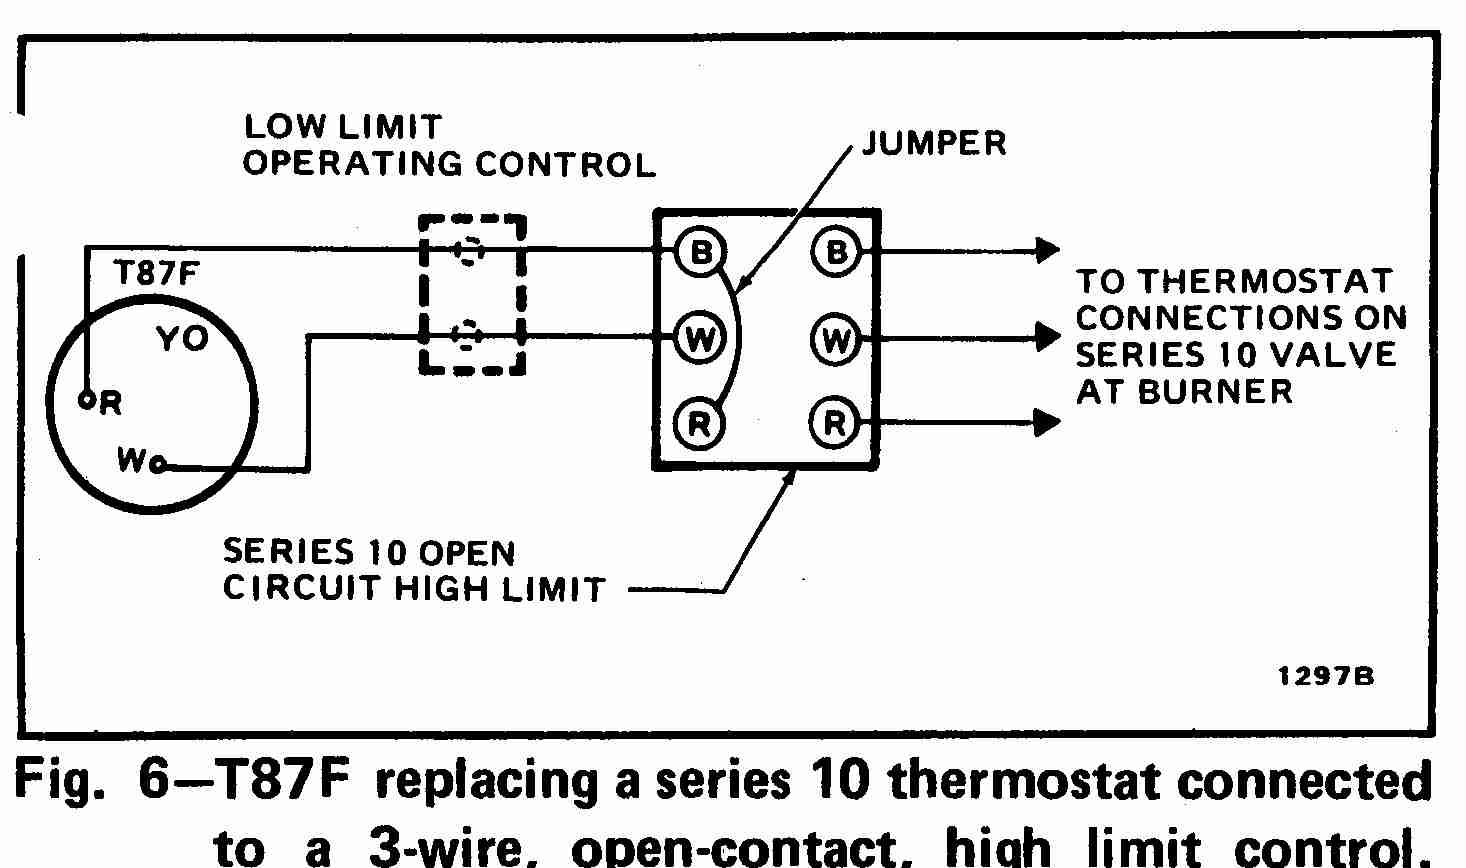 honeywell thermostat wiring diagram 3 wire 2 wire honeywell thermostat wiring diagram room thermostat wiring diagrams for hvac systems